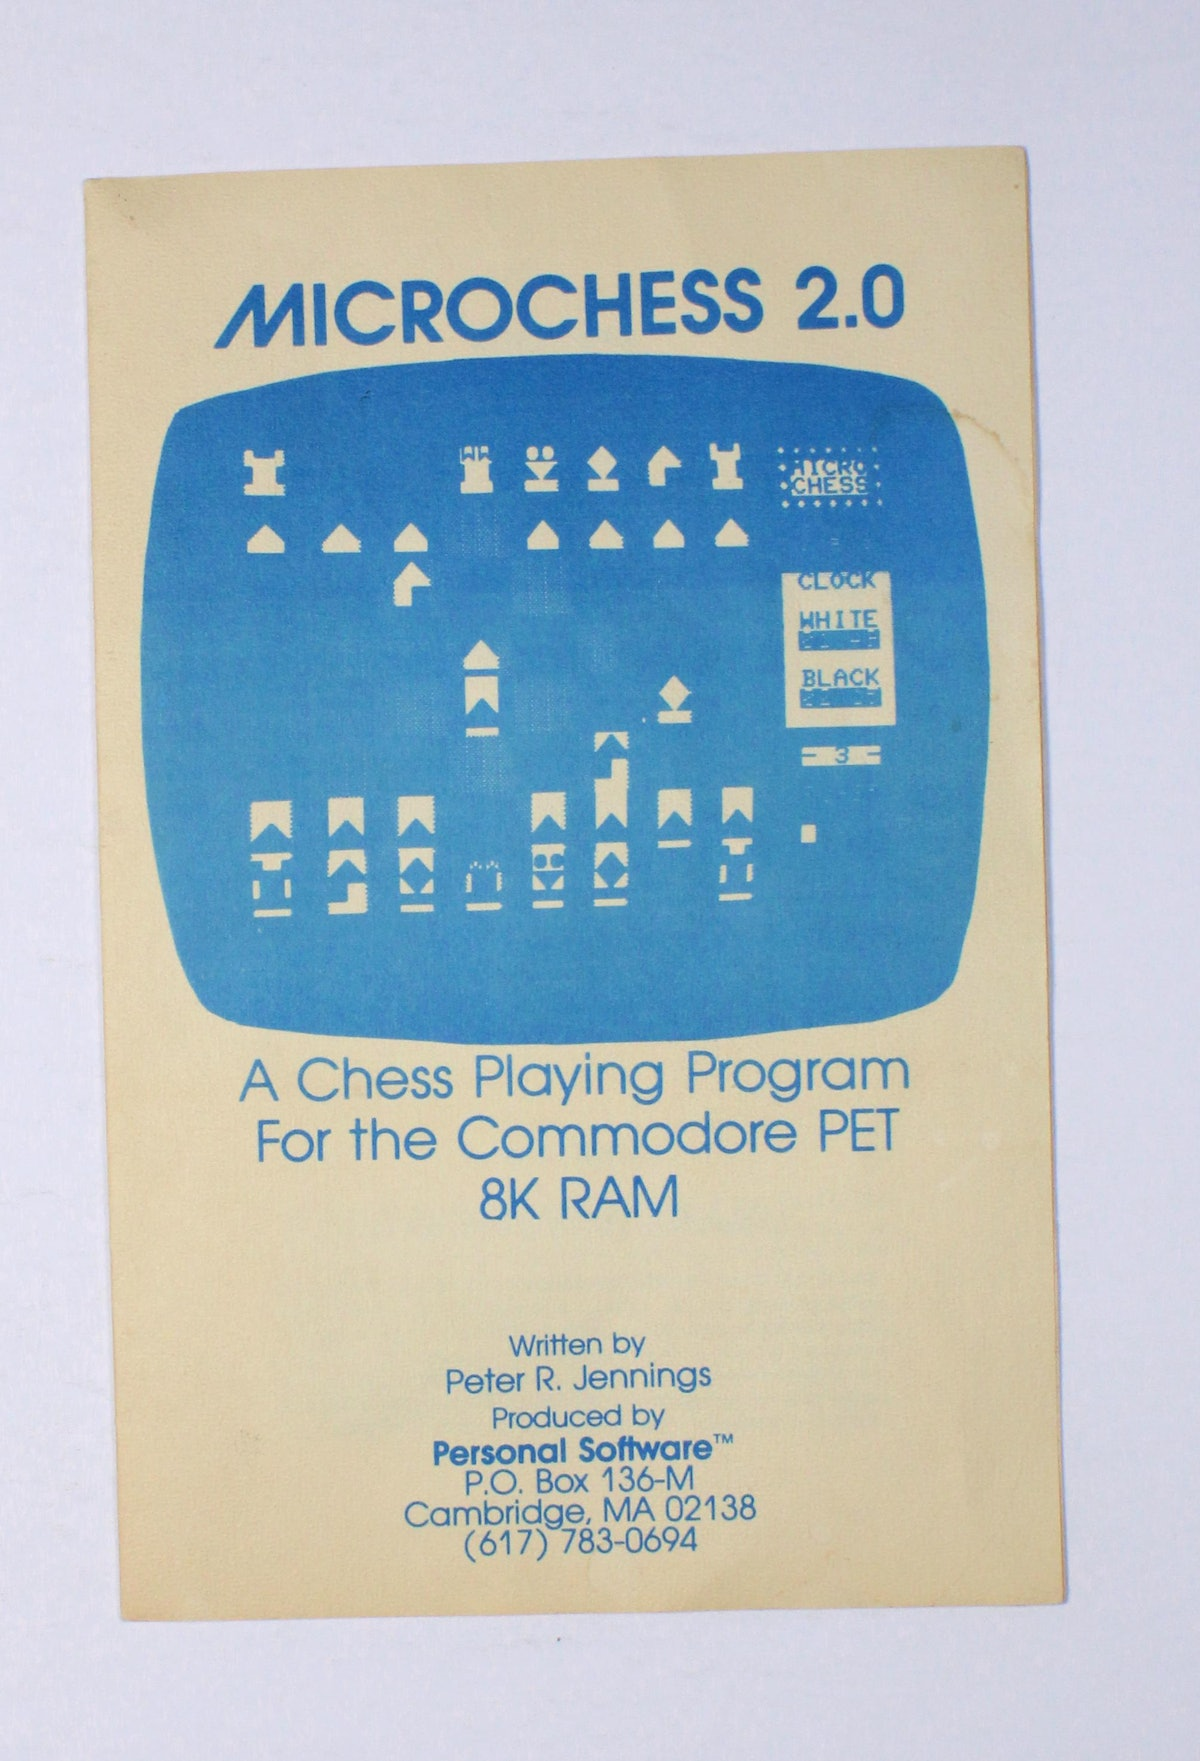 Microchess 2.0: A chess playing program for the Commodore PET 8K RAM